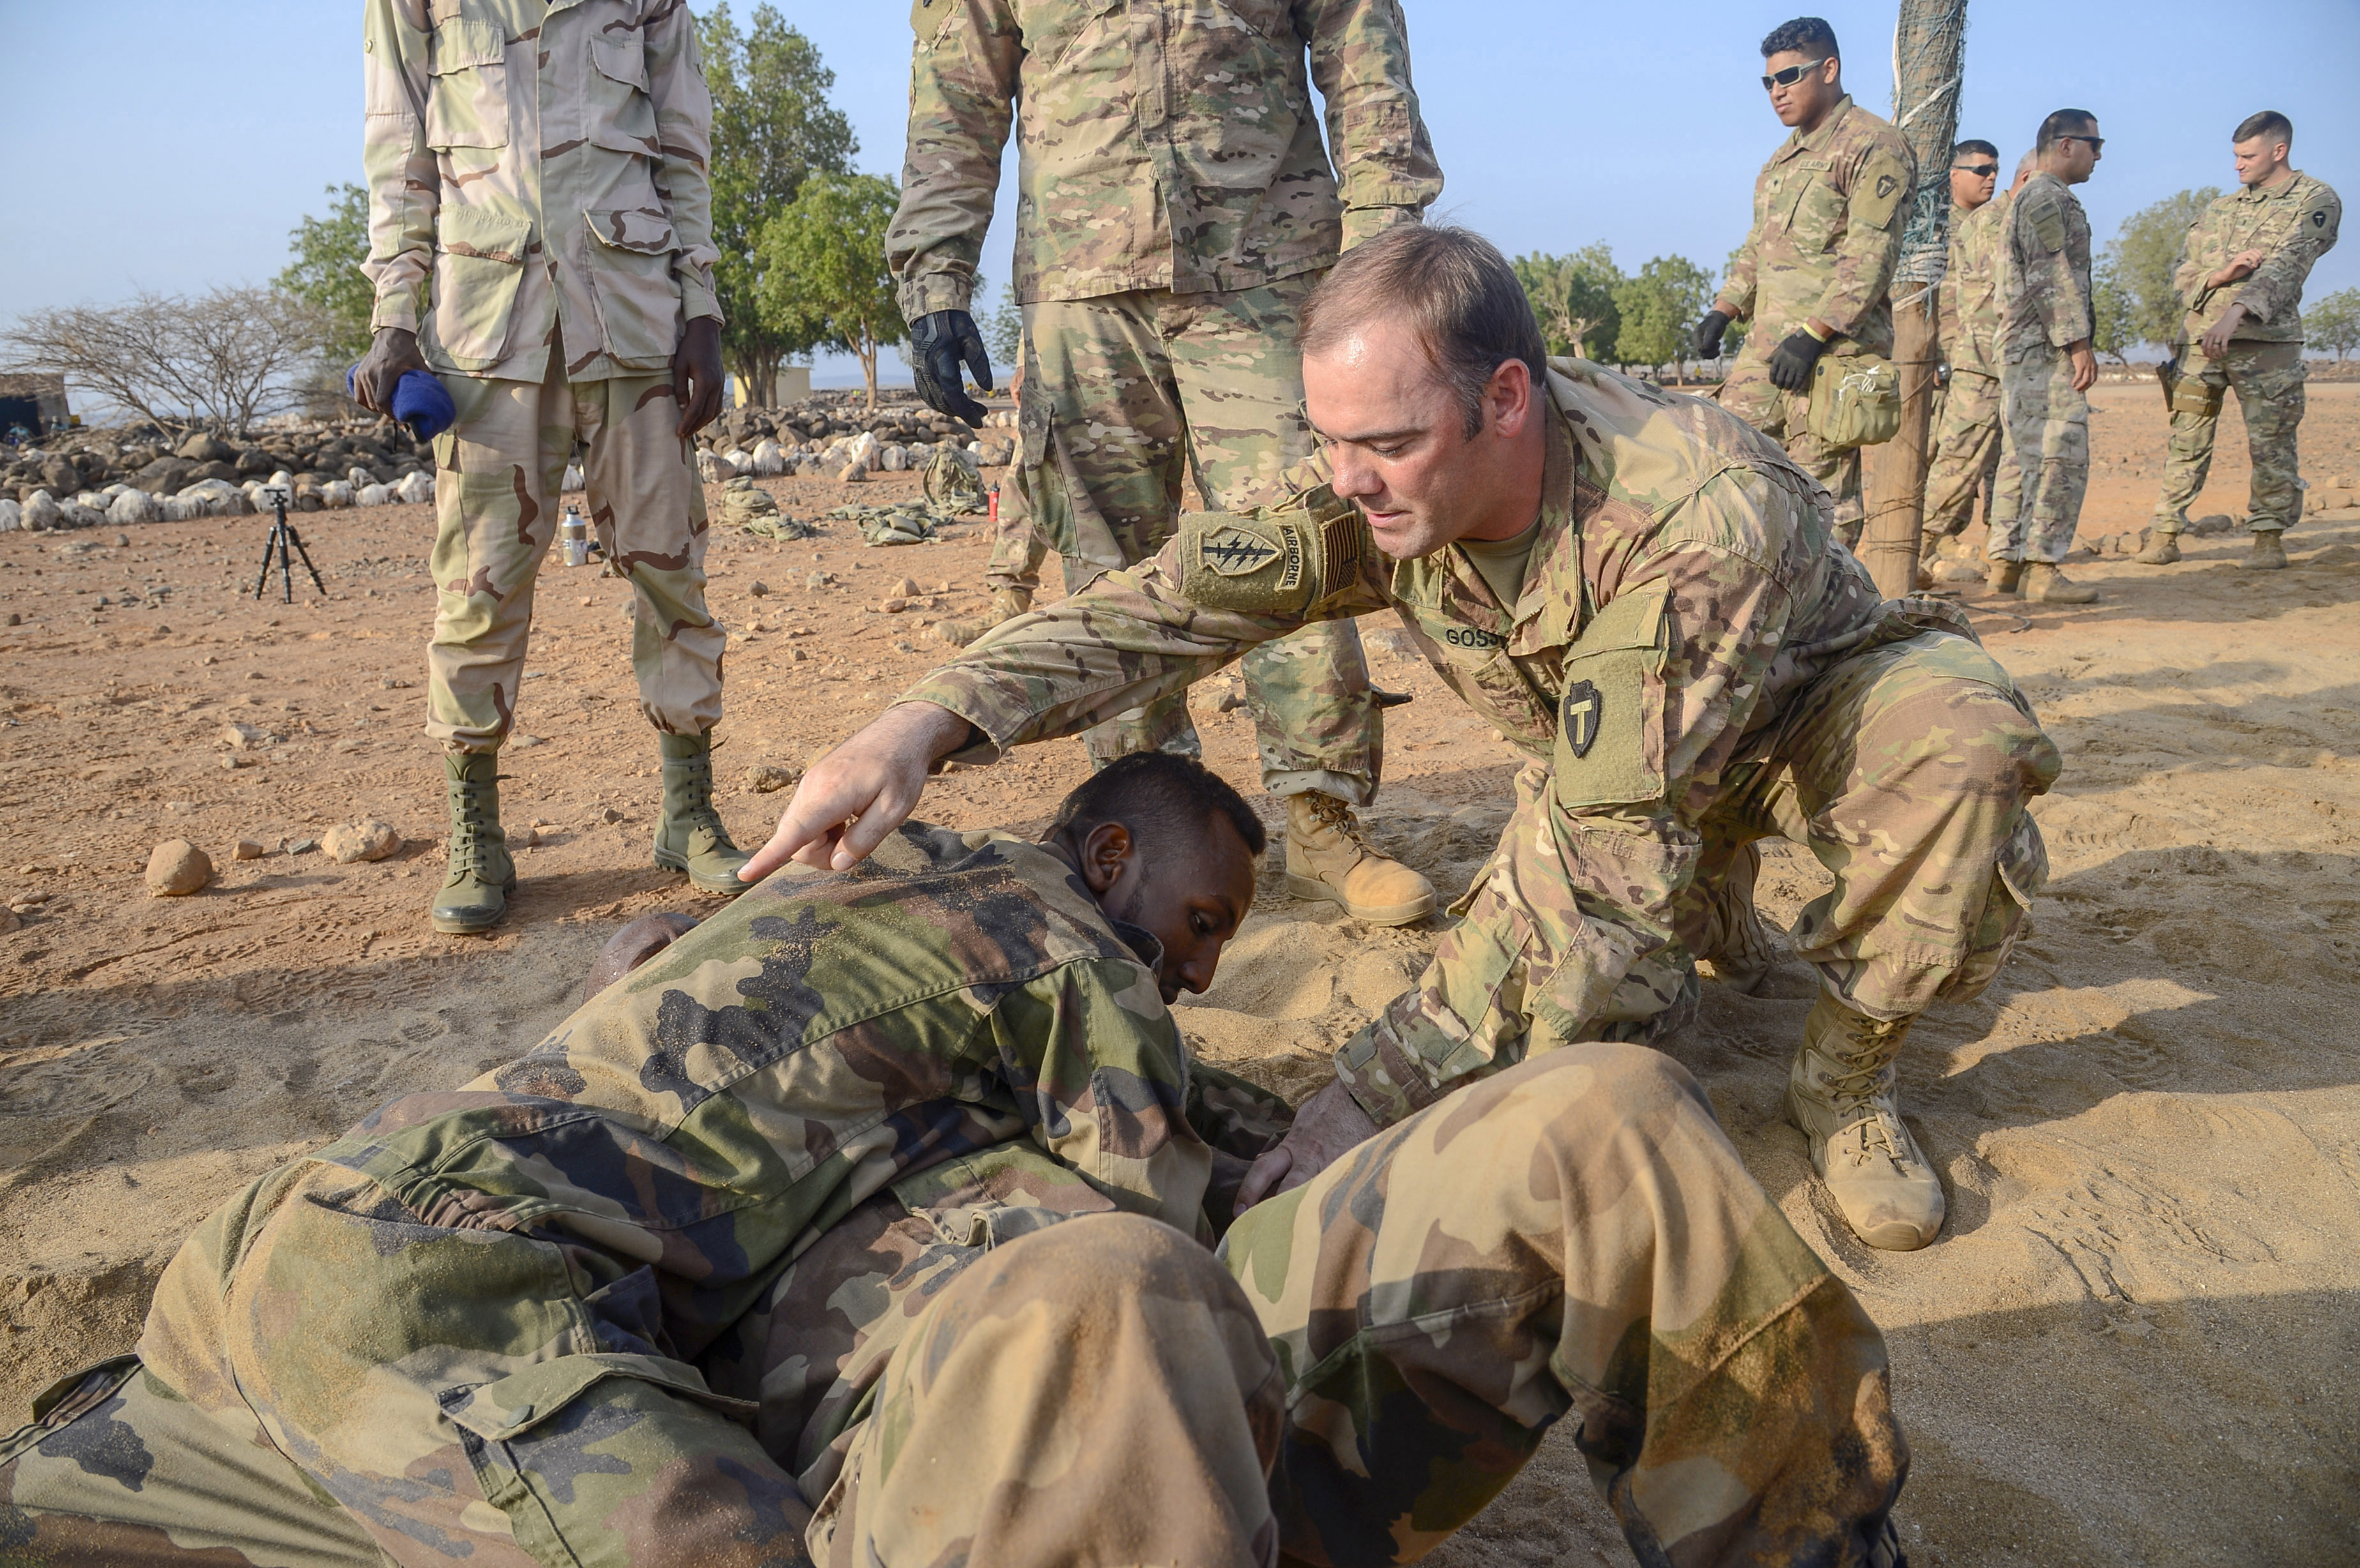 U.S. Army 1st Sergeant Matthew Goss, Charlie Company, 3rd Battalion, 144th Infantry Regiment, Texas National Guard, trains Djiboutian Soldiers in U.S. Army Combatives at a site outside Djibouti City, April 16, 2018. U.S. Army Combatives training is one the courses for the Djiboutian Army's Rapid Intervention Battalion, a newly formed crisis response unit. (U.S. Navy Photo by Mass Communication Specialist 2nd Class Timothy M. Ahearn)